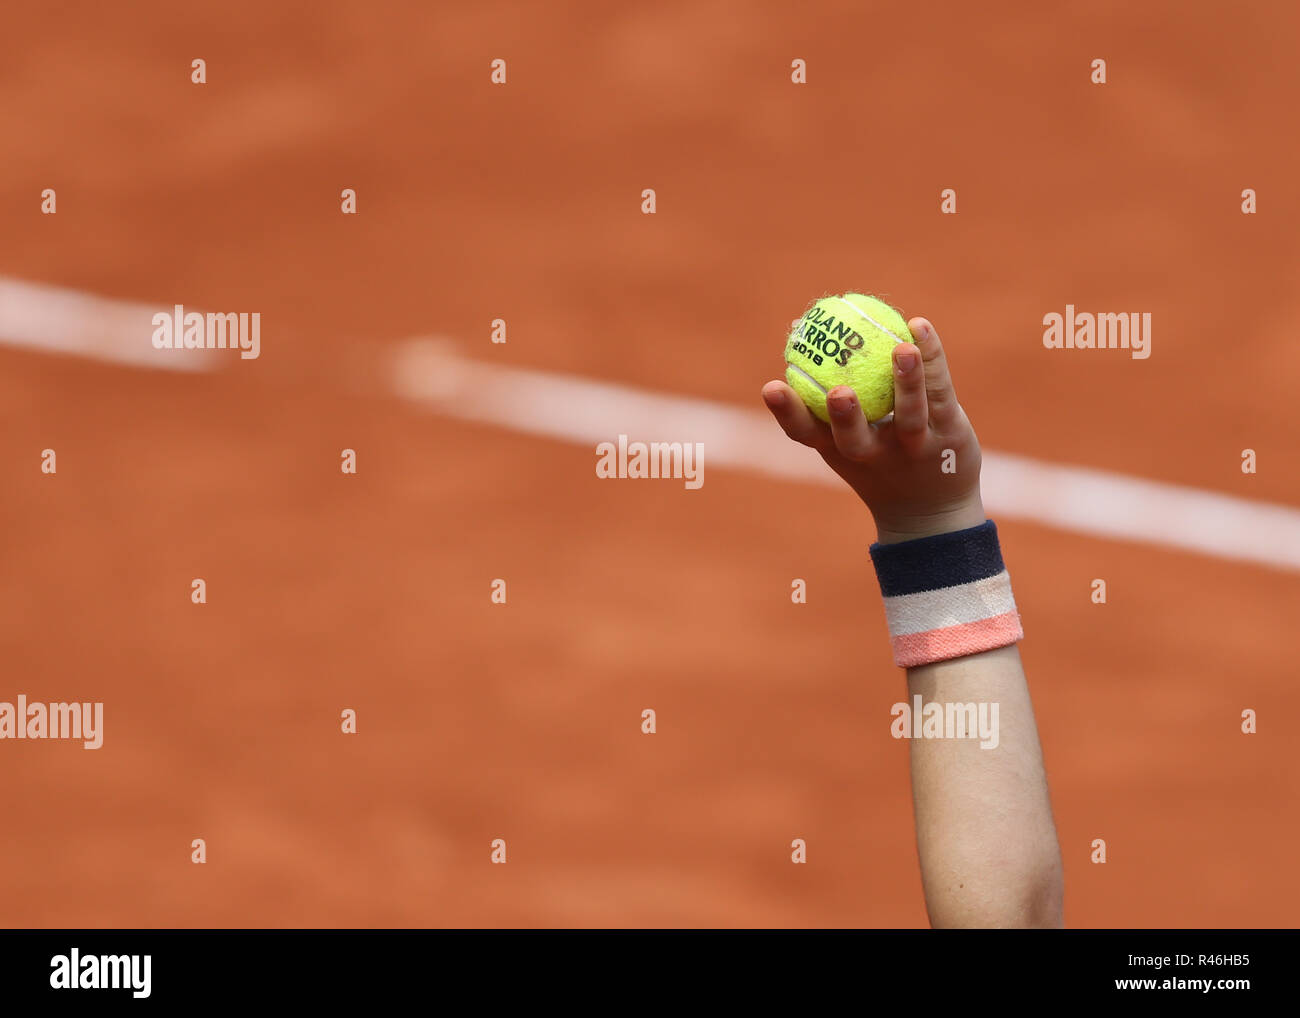 Hand of ball girl holding up ball  during French Open 2018, Paris, France - Stock Image